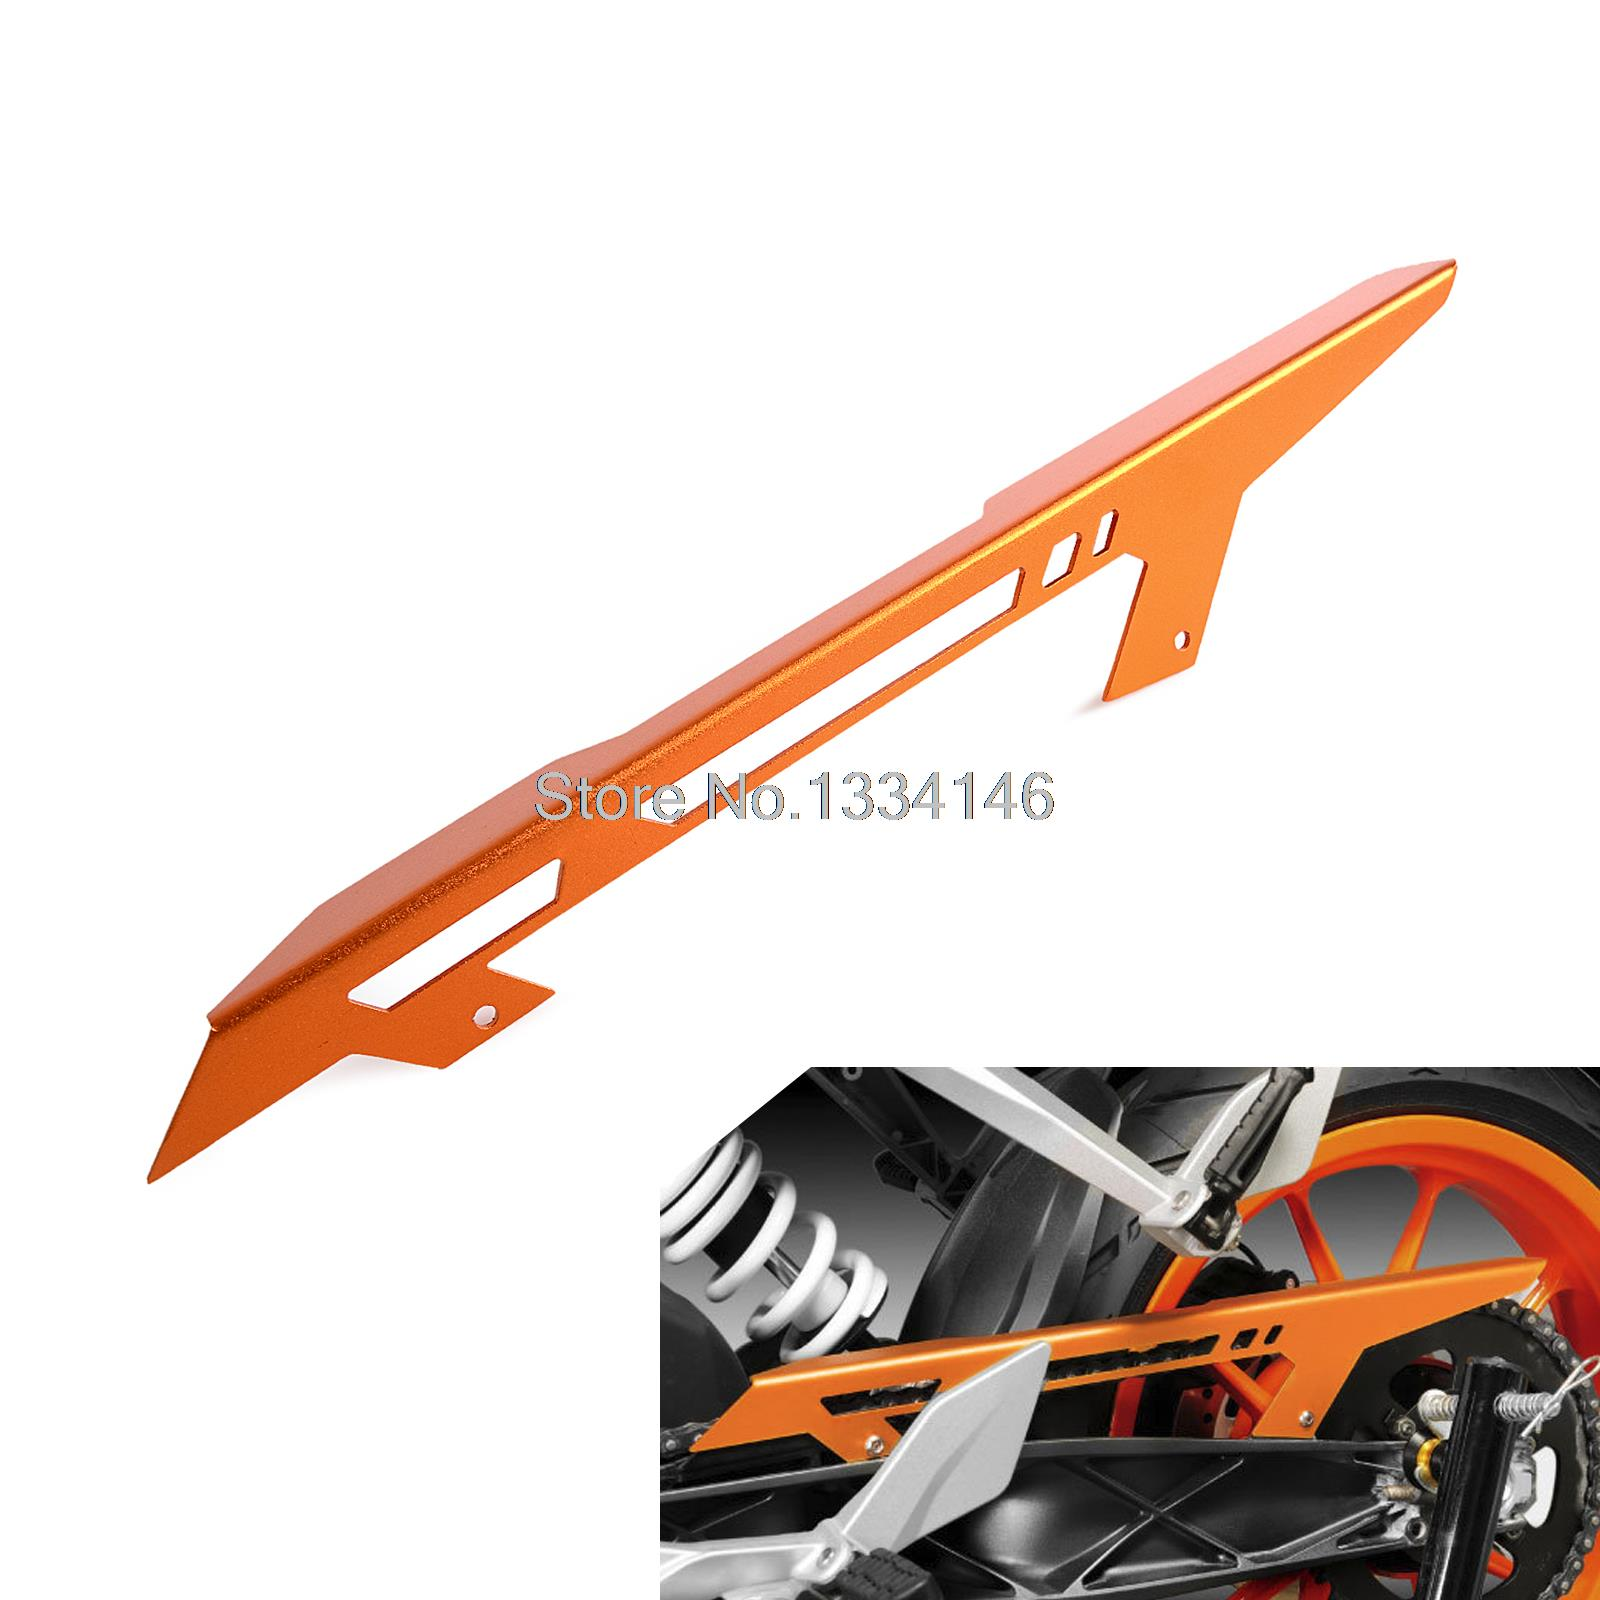 Orange Anodized Chain Guard Cover for KTM 125 200 390 Duke 2011-2016<br>